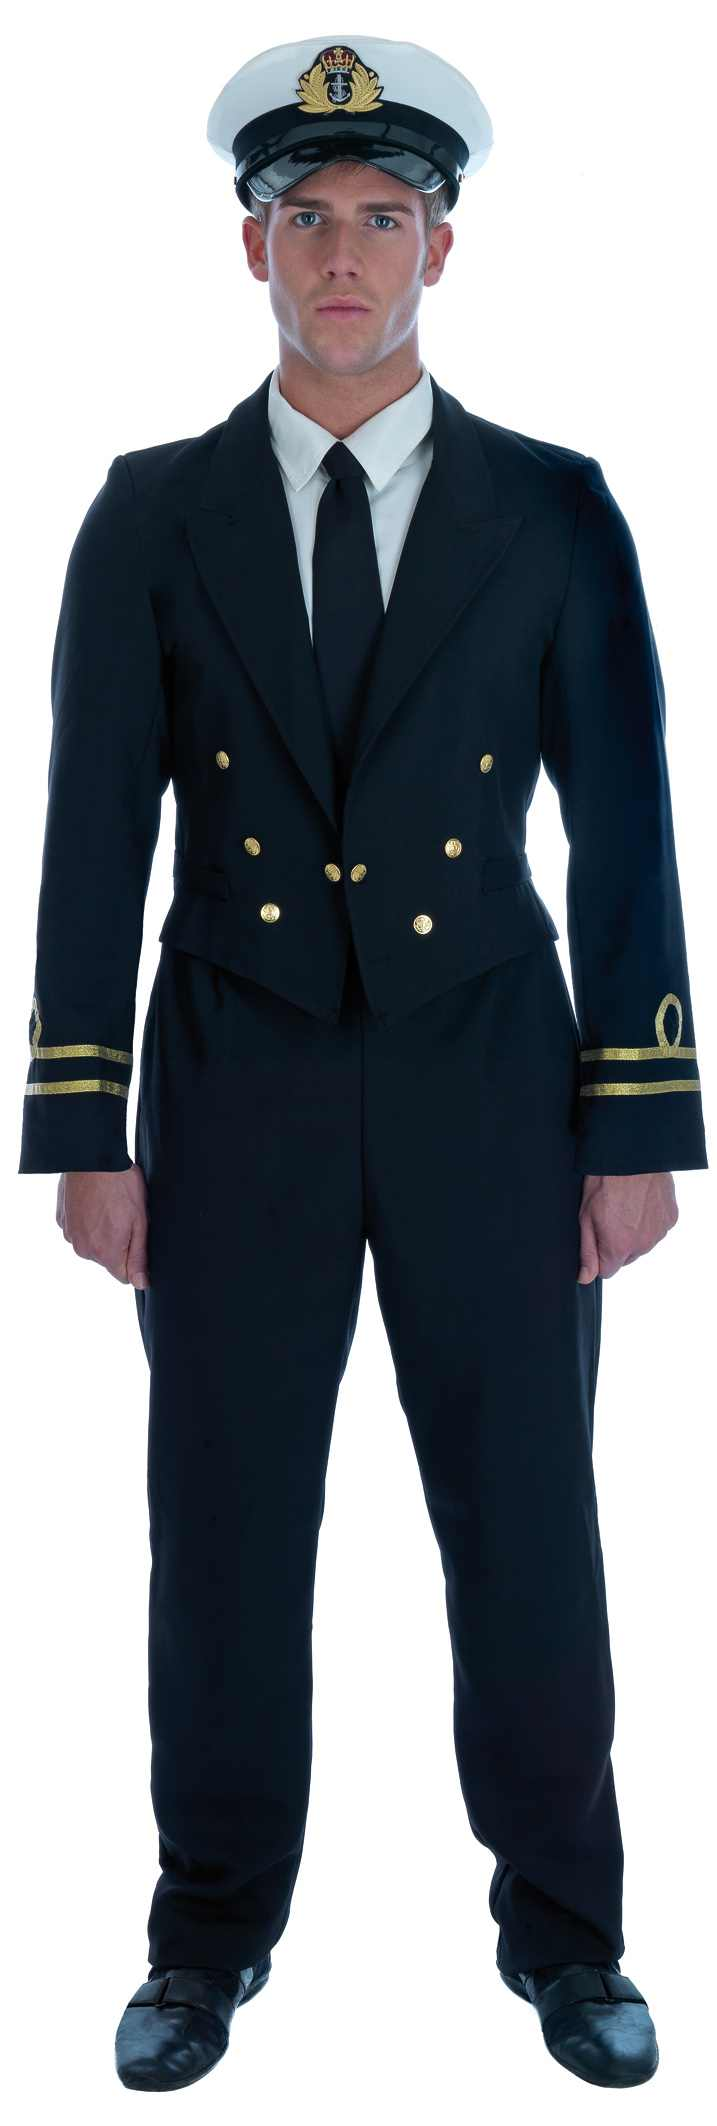 Mens WW2 Naval Officer Costume for Navy Sailor Fancy Dress Up Outfits